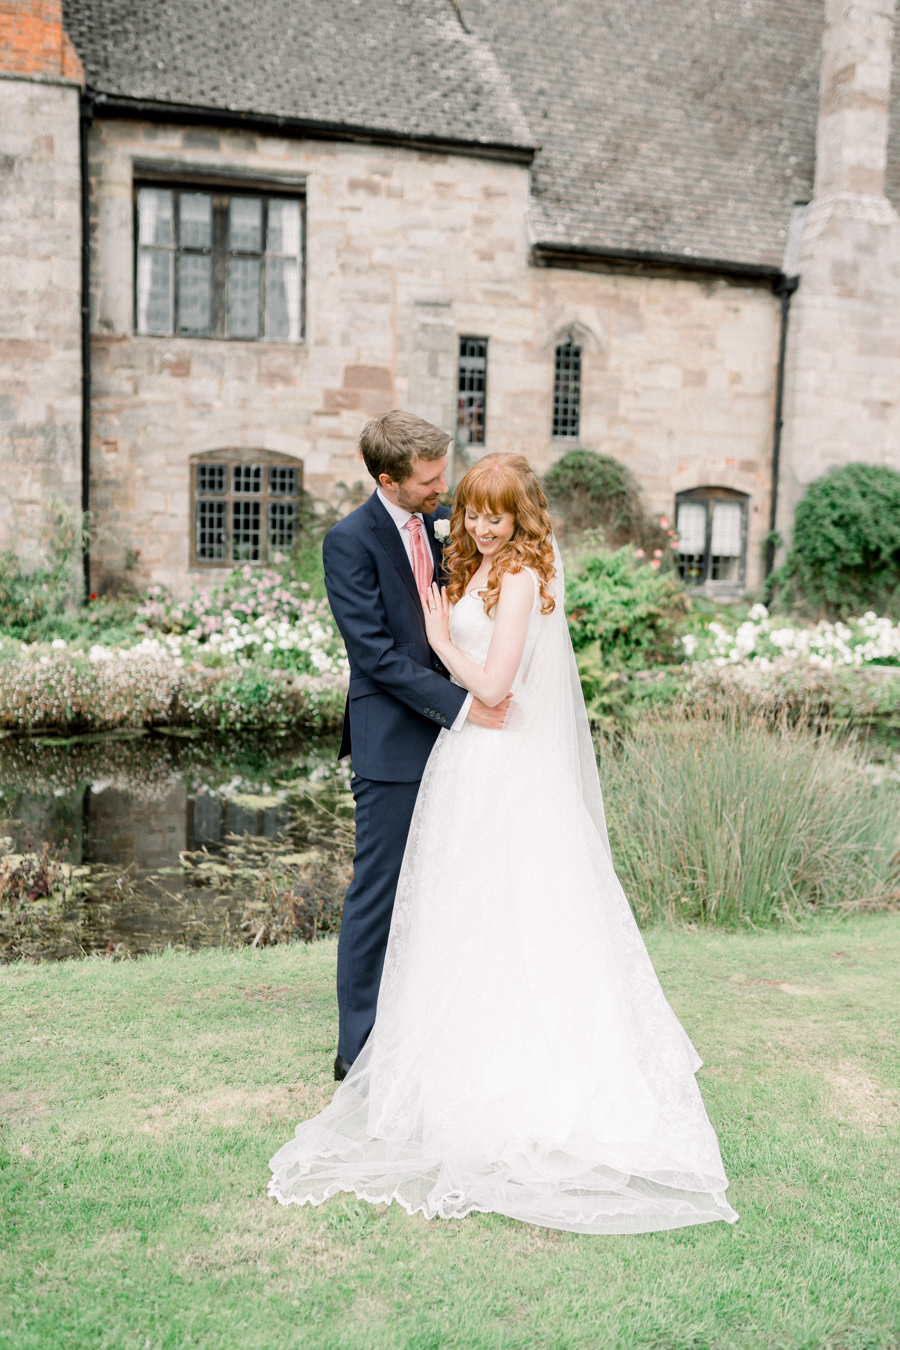 Fine art wedding photography blog from Brinsop Court UK, images by Joanna Briggs Photography (20)